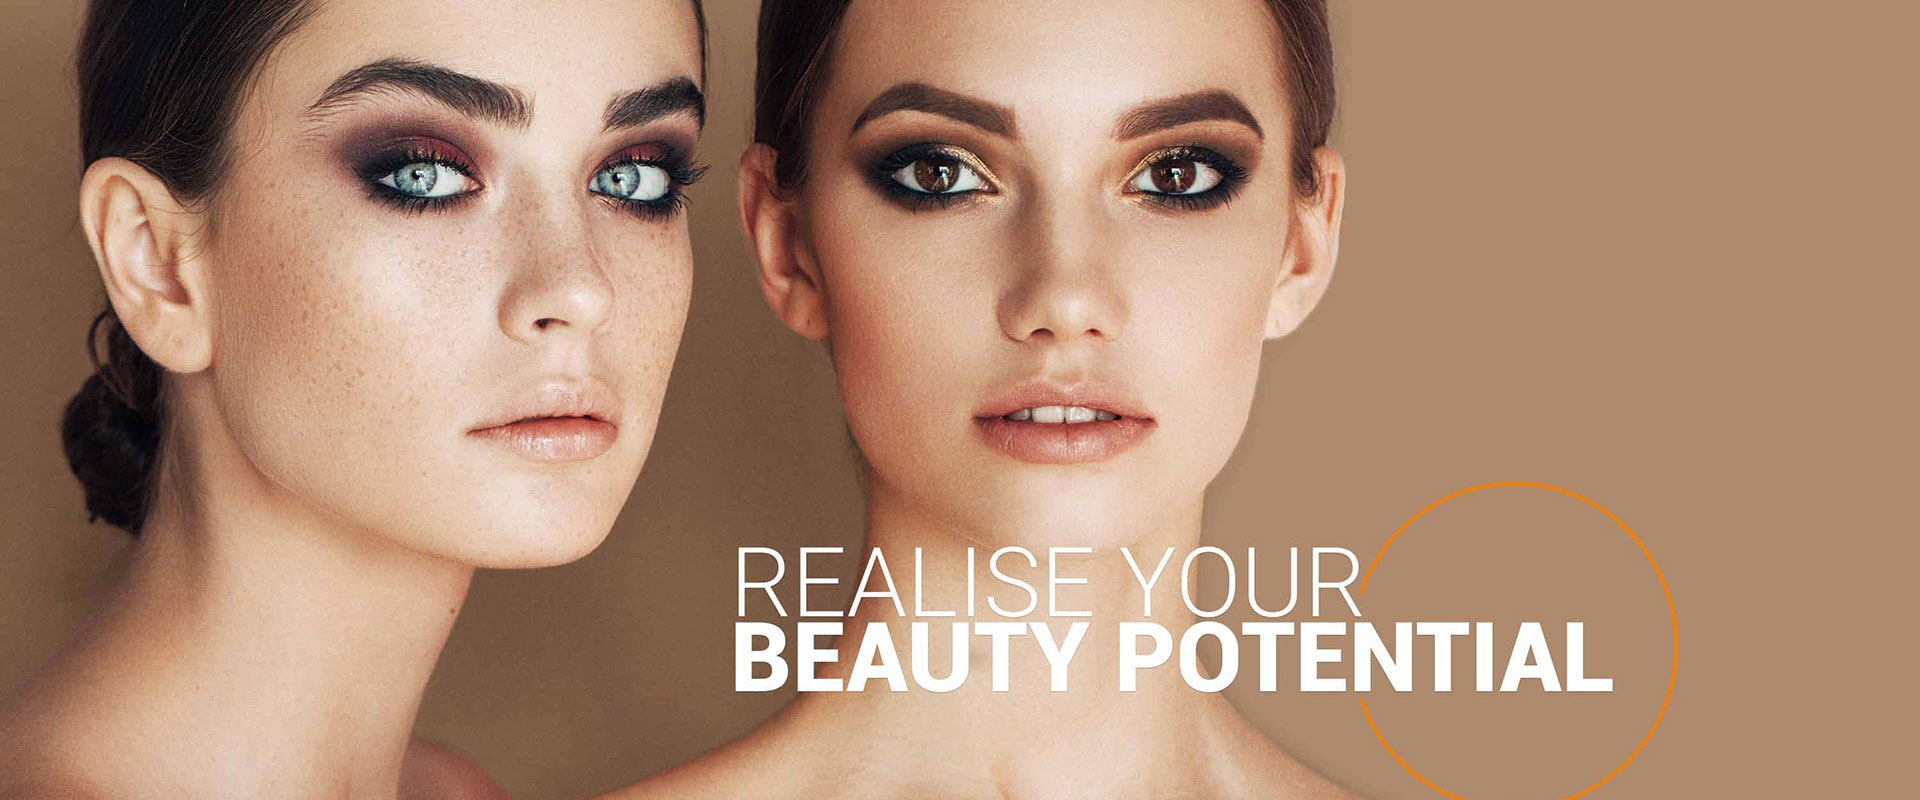 Realise your Beauty Potential